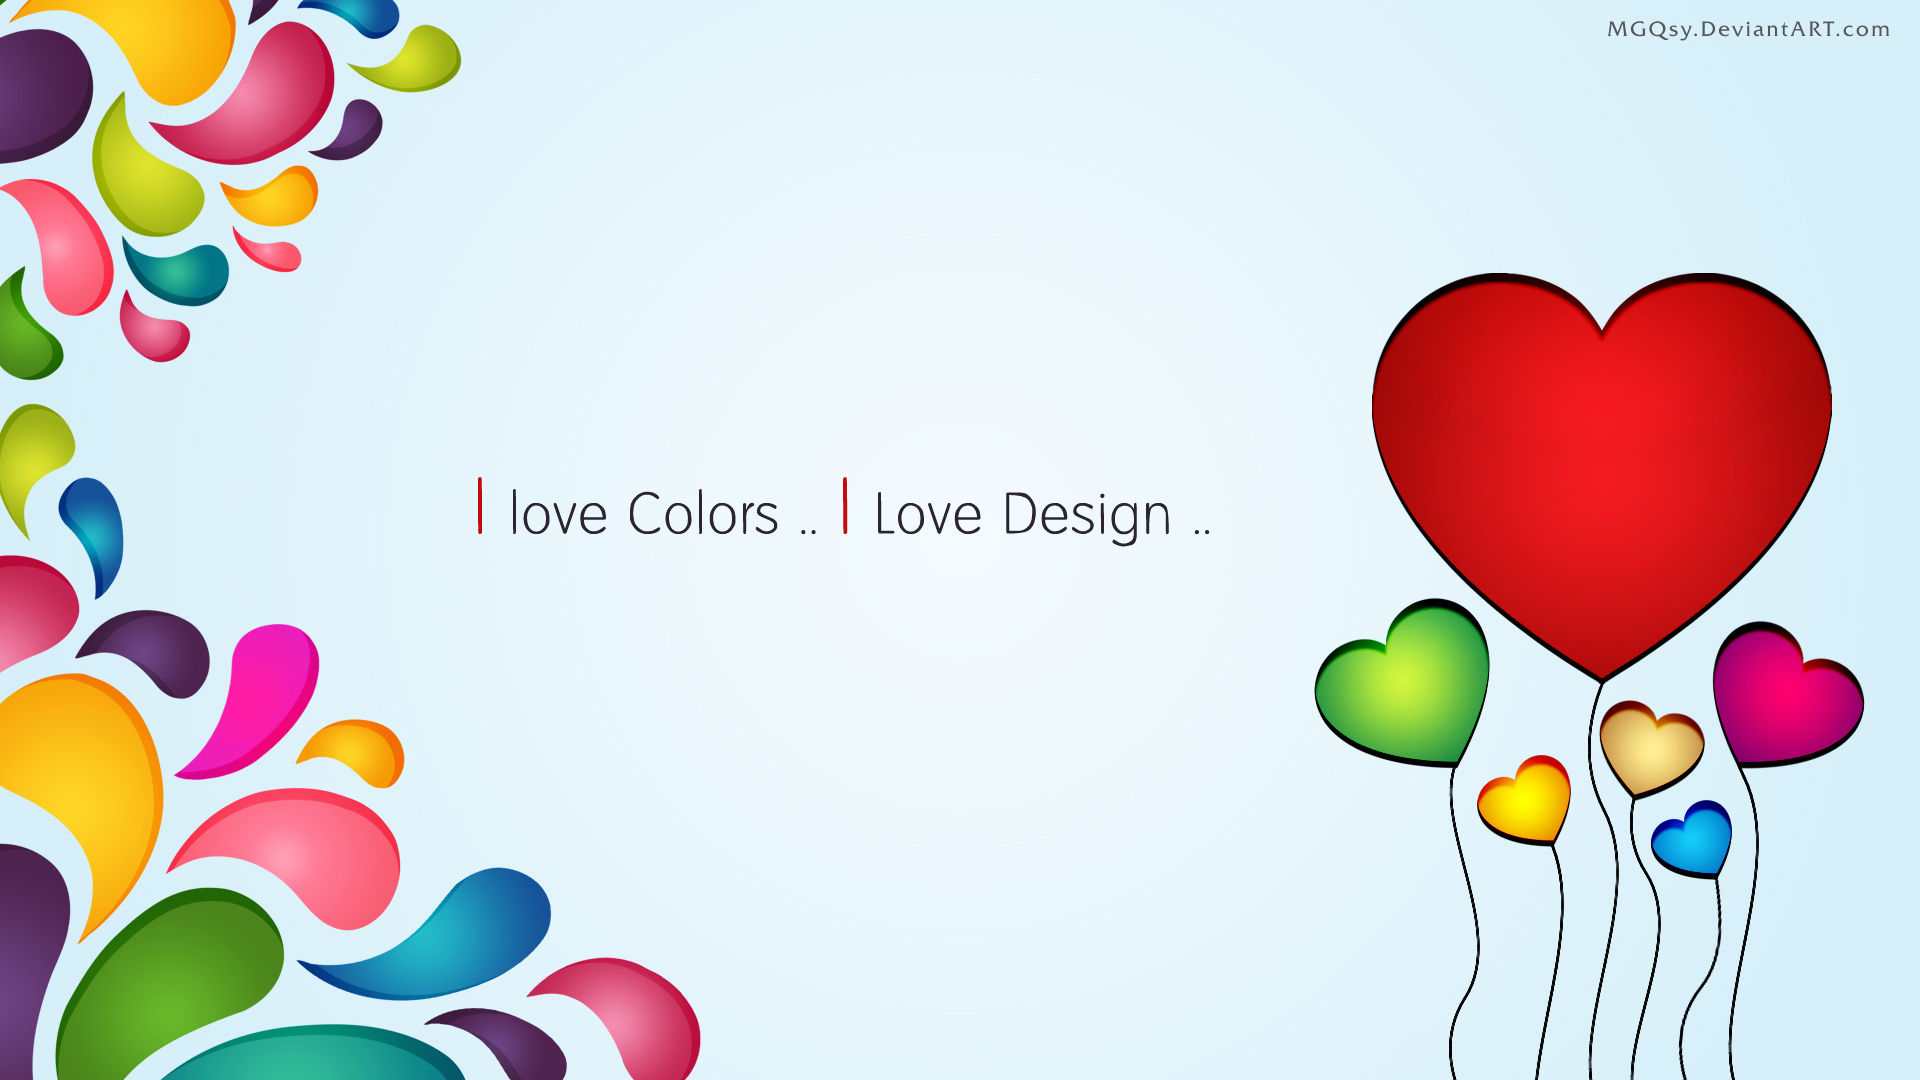 I Love Colors Wallpaper By MGQsy